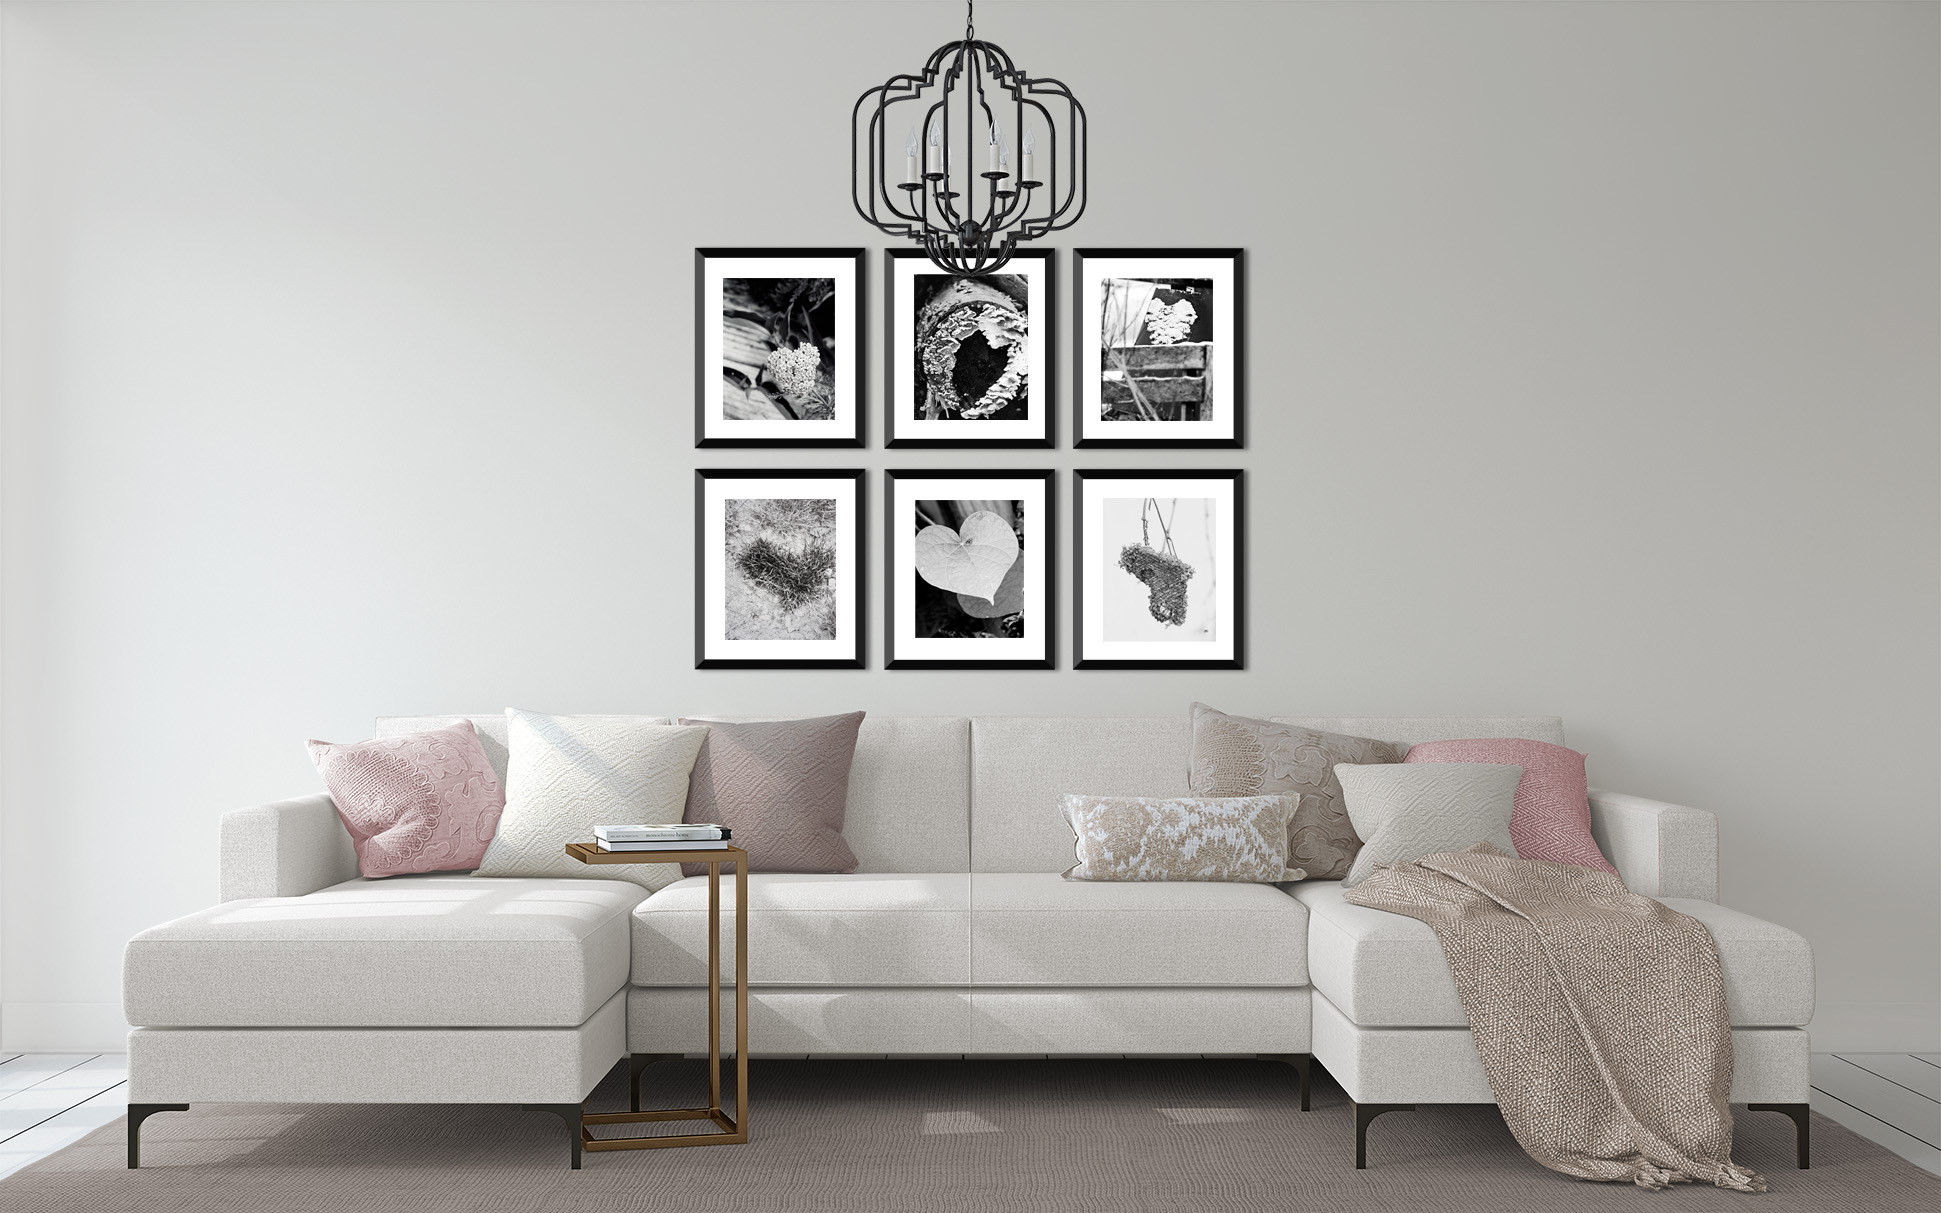 Wall display of Hearts in Nature Collection by Tonya M. Brill. Metallic Photographic Print.